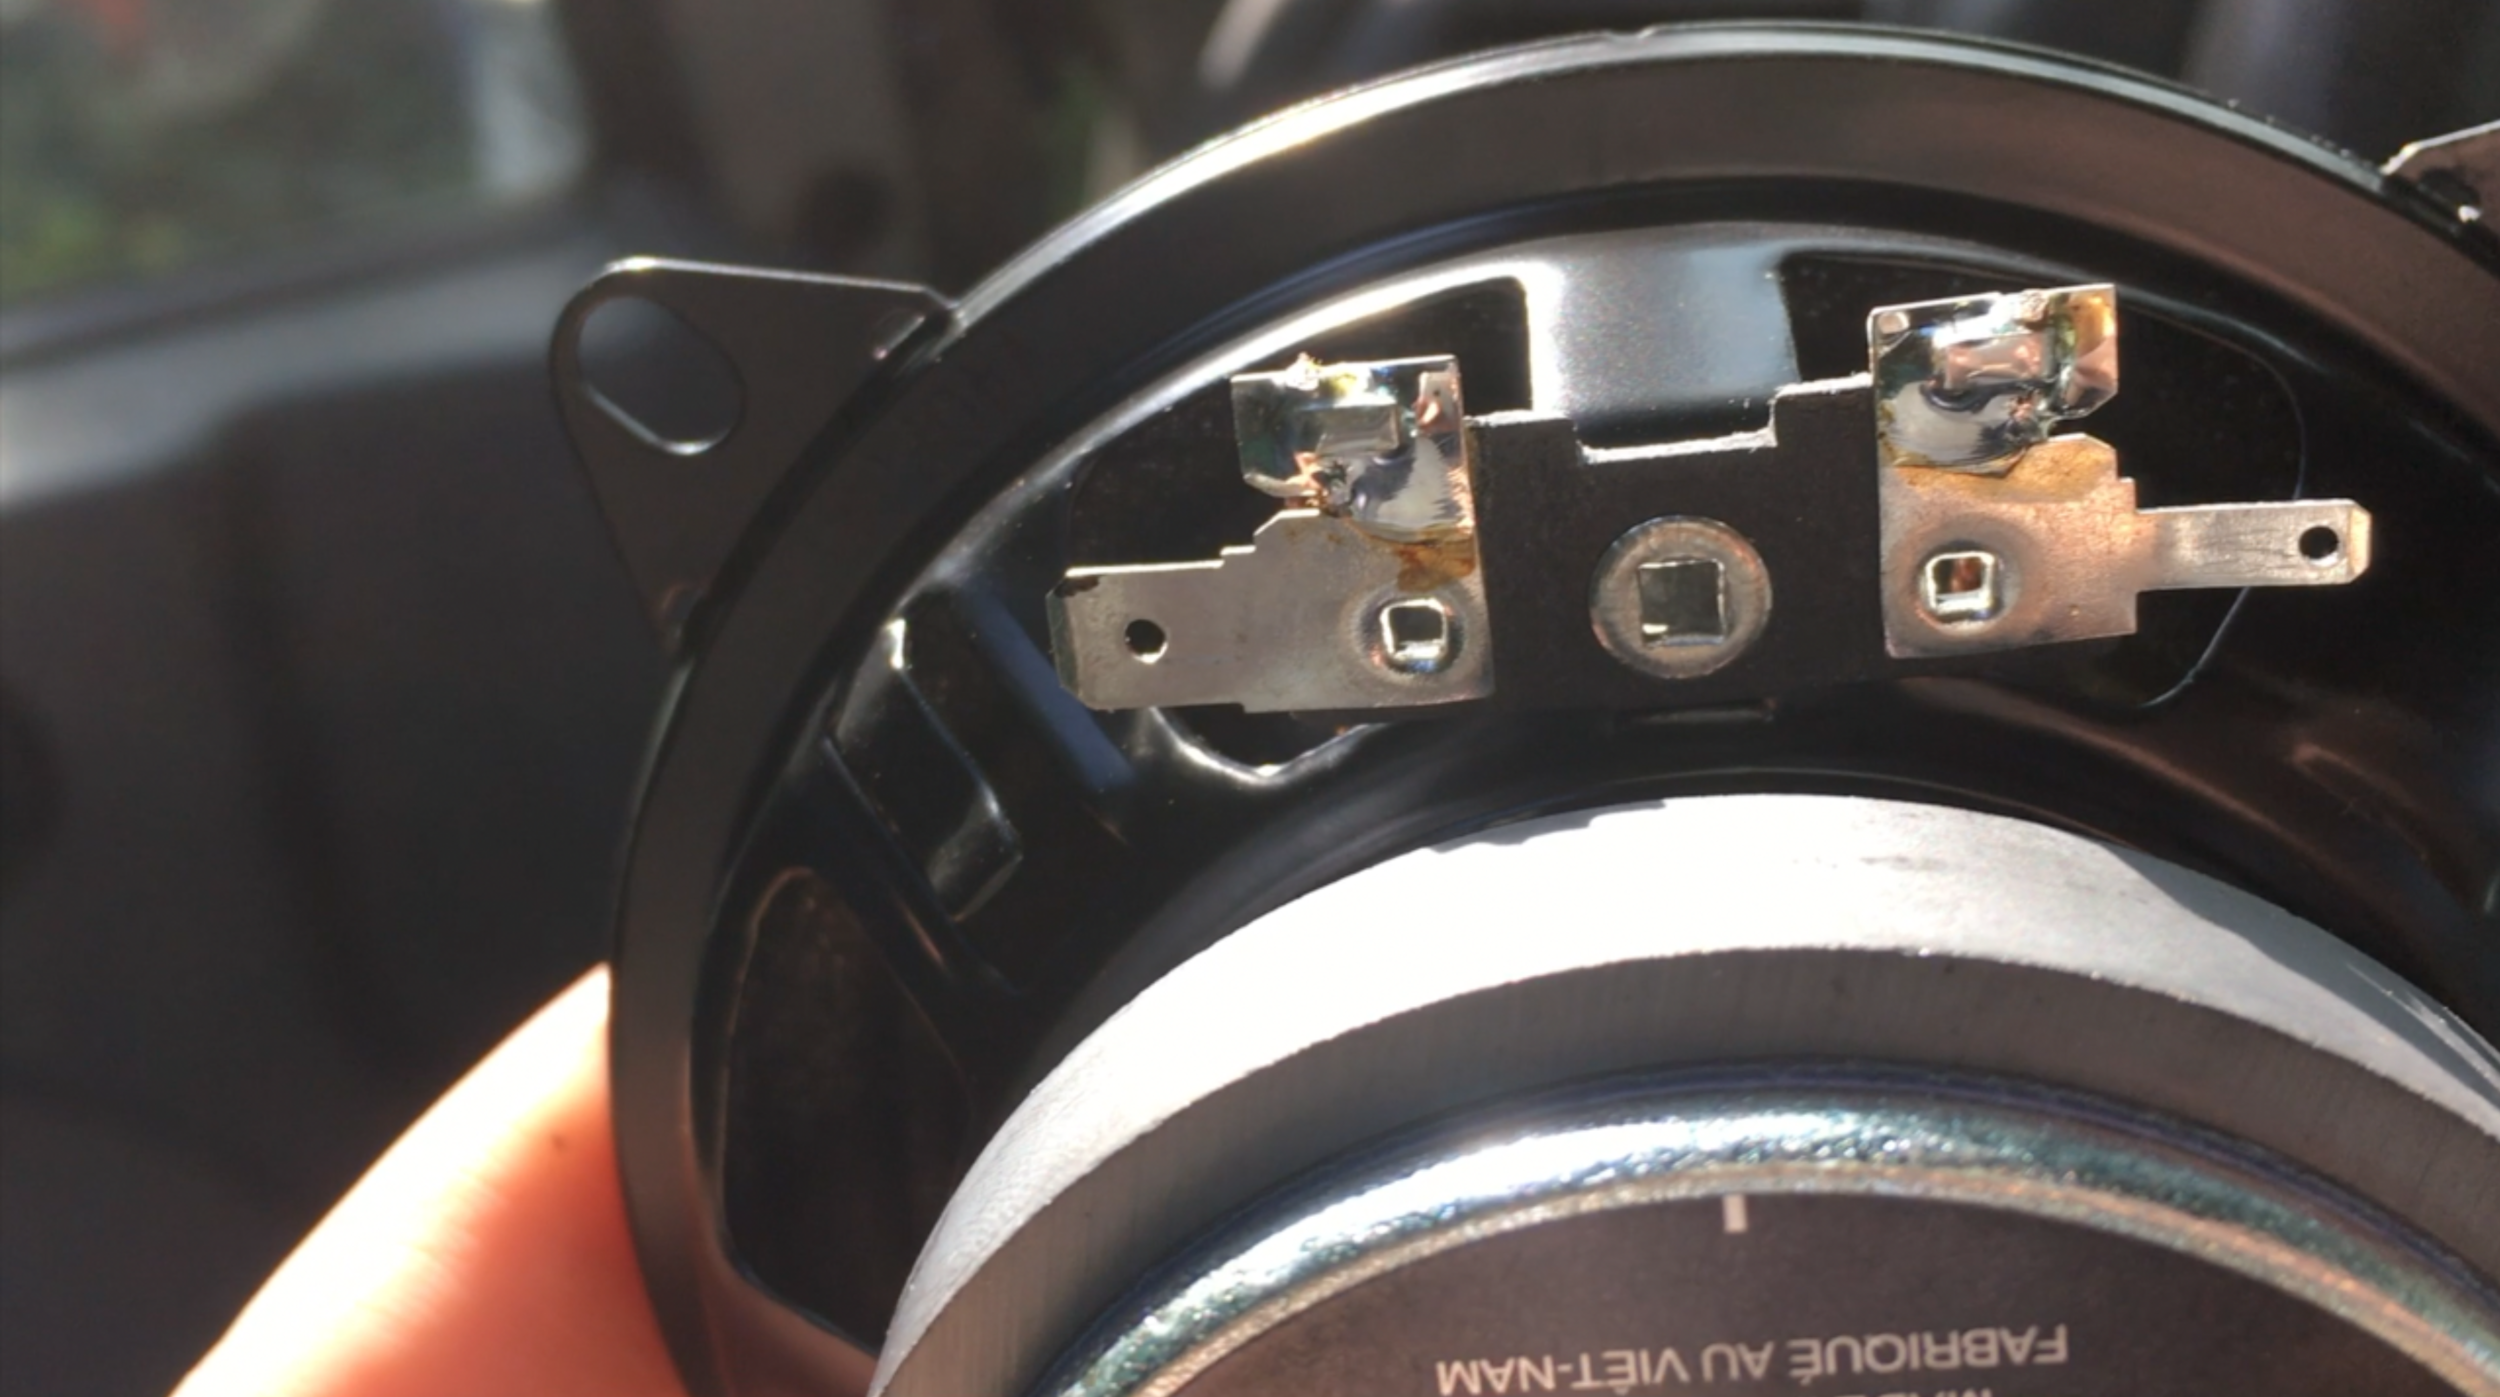 Metal tabs that must have wires attached to them (new speakers)